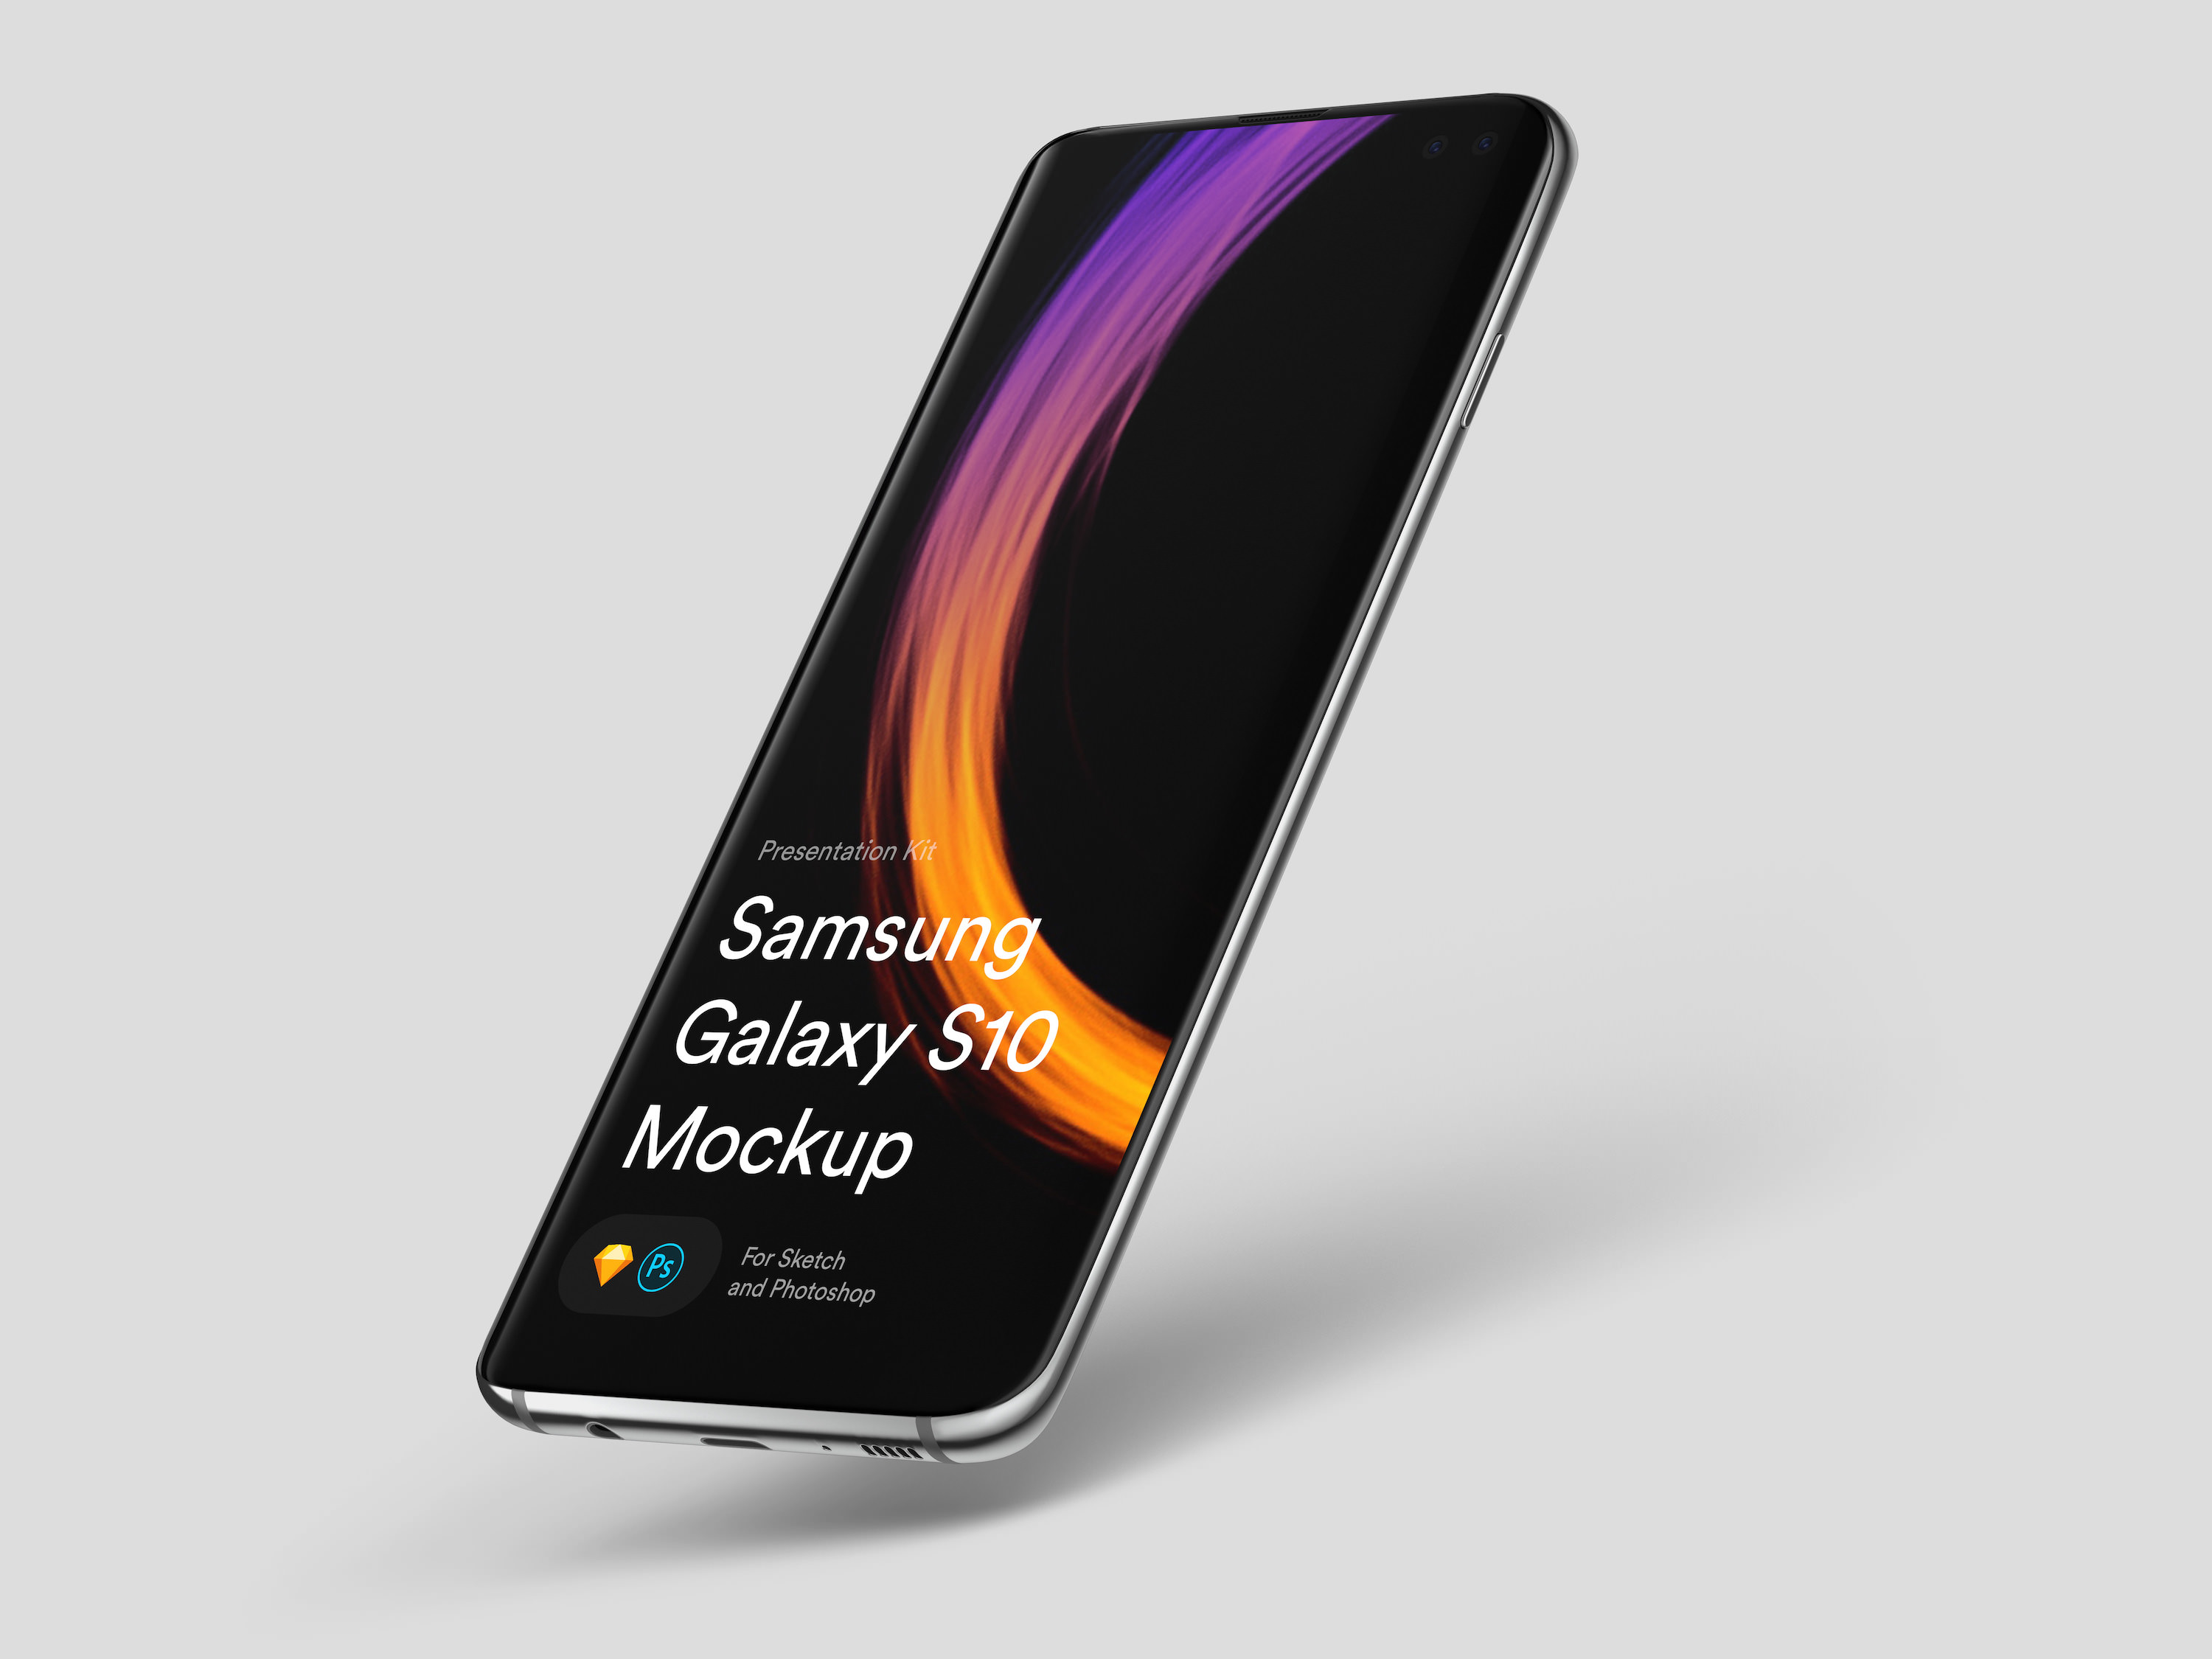 Download Samsung Galaxy S10 Mockup for Sketch and Photoshop